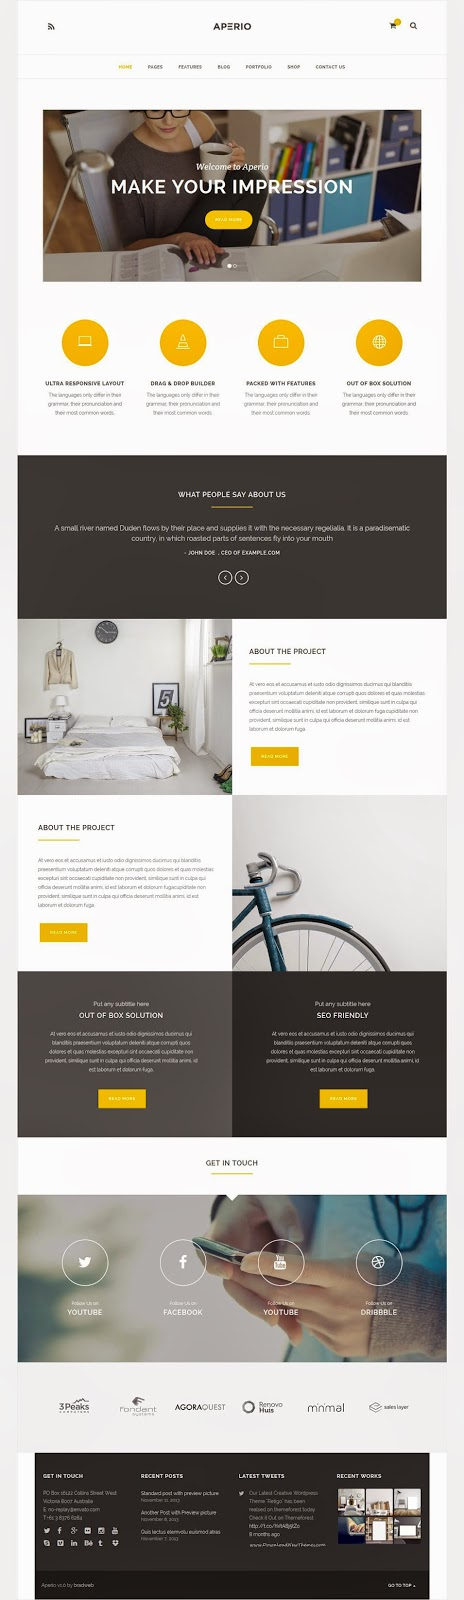 Premium Multipurpose WordPress Theme 2015